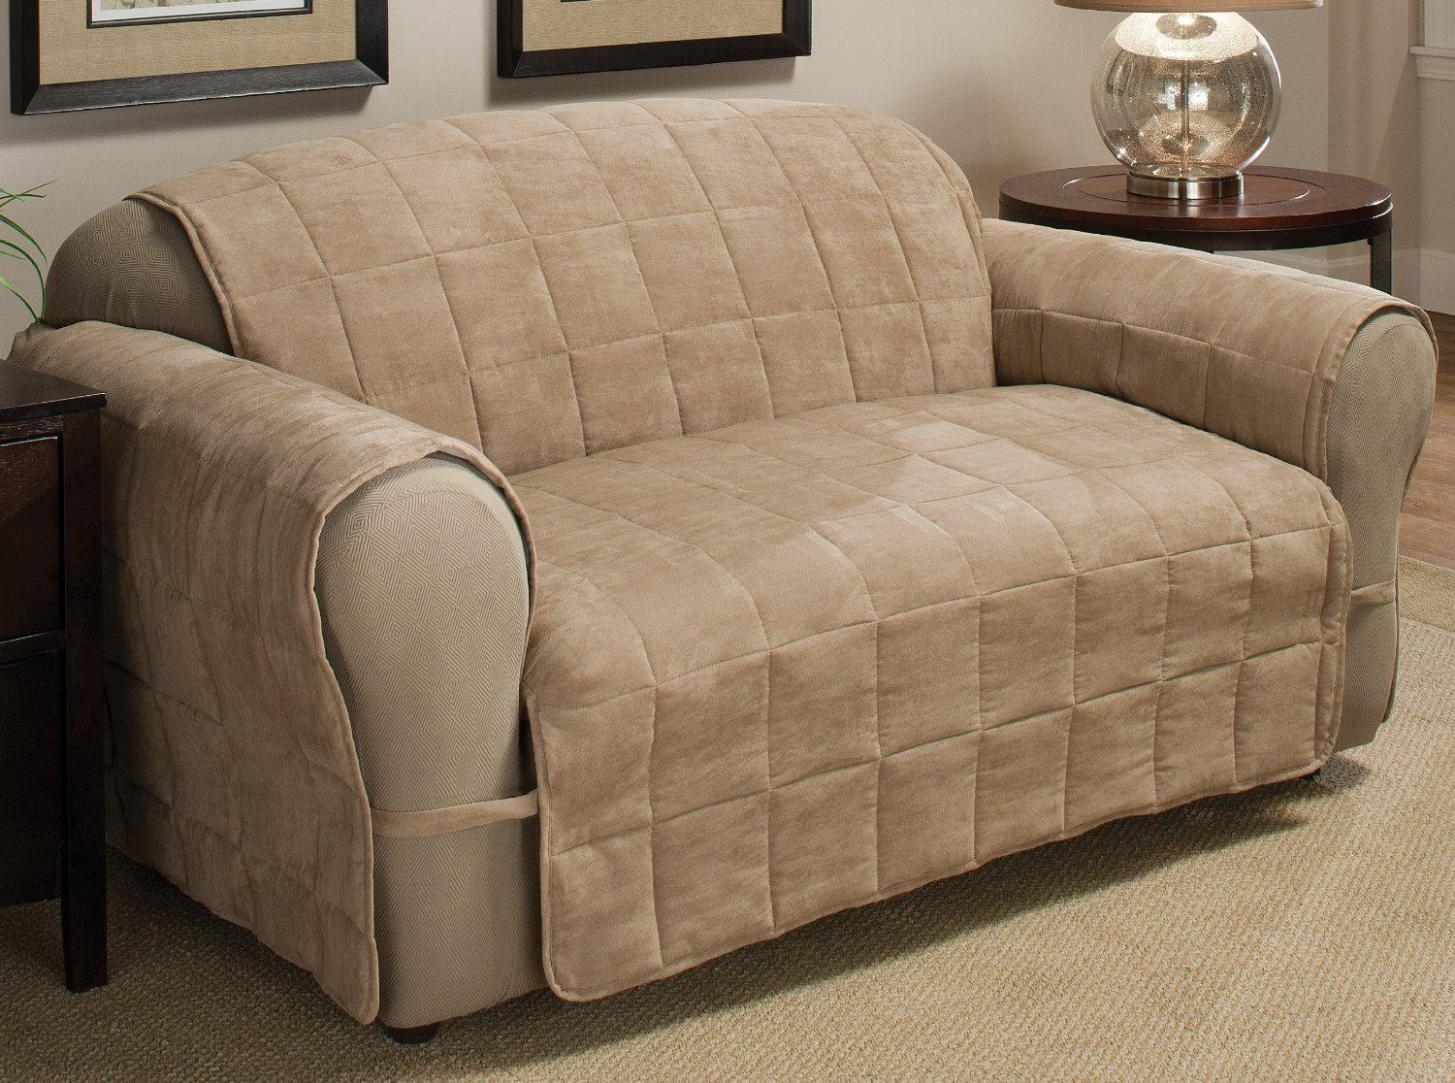 Furniture & Rug: Recliner Covers | Lazy Boy Recliner Cover | Slip Pertaining To Sofa And Chair Covers (View 4 of 20)